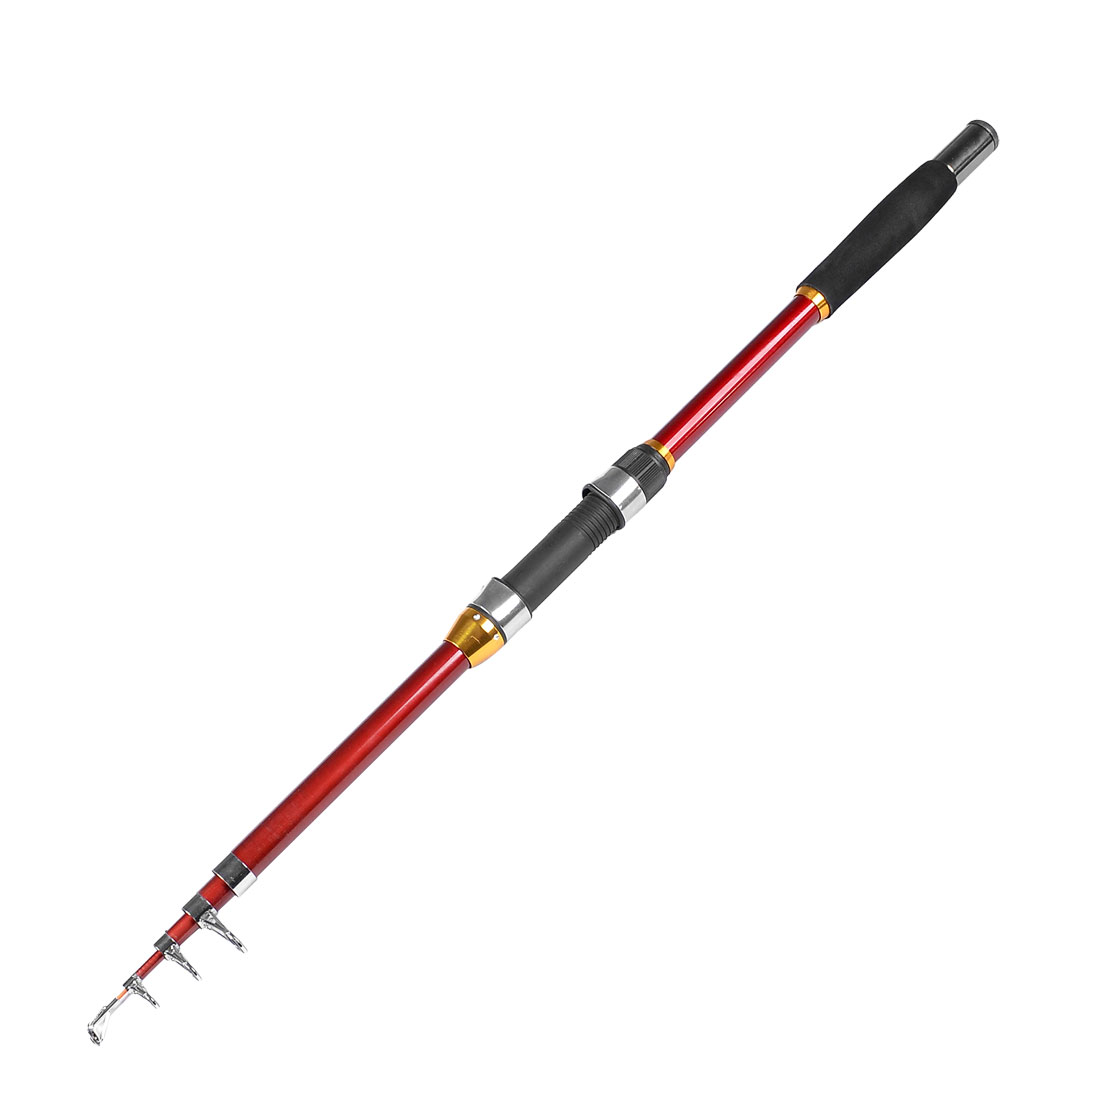 1.84M Length Line Guide Telescopic 5 Sections Fishing Rod Pole Red Gold Tone